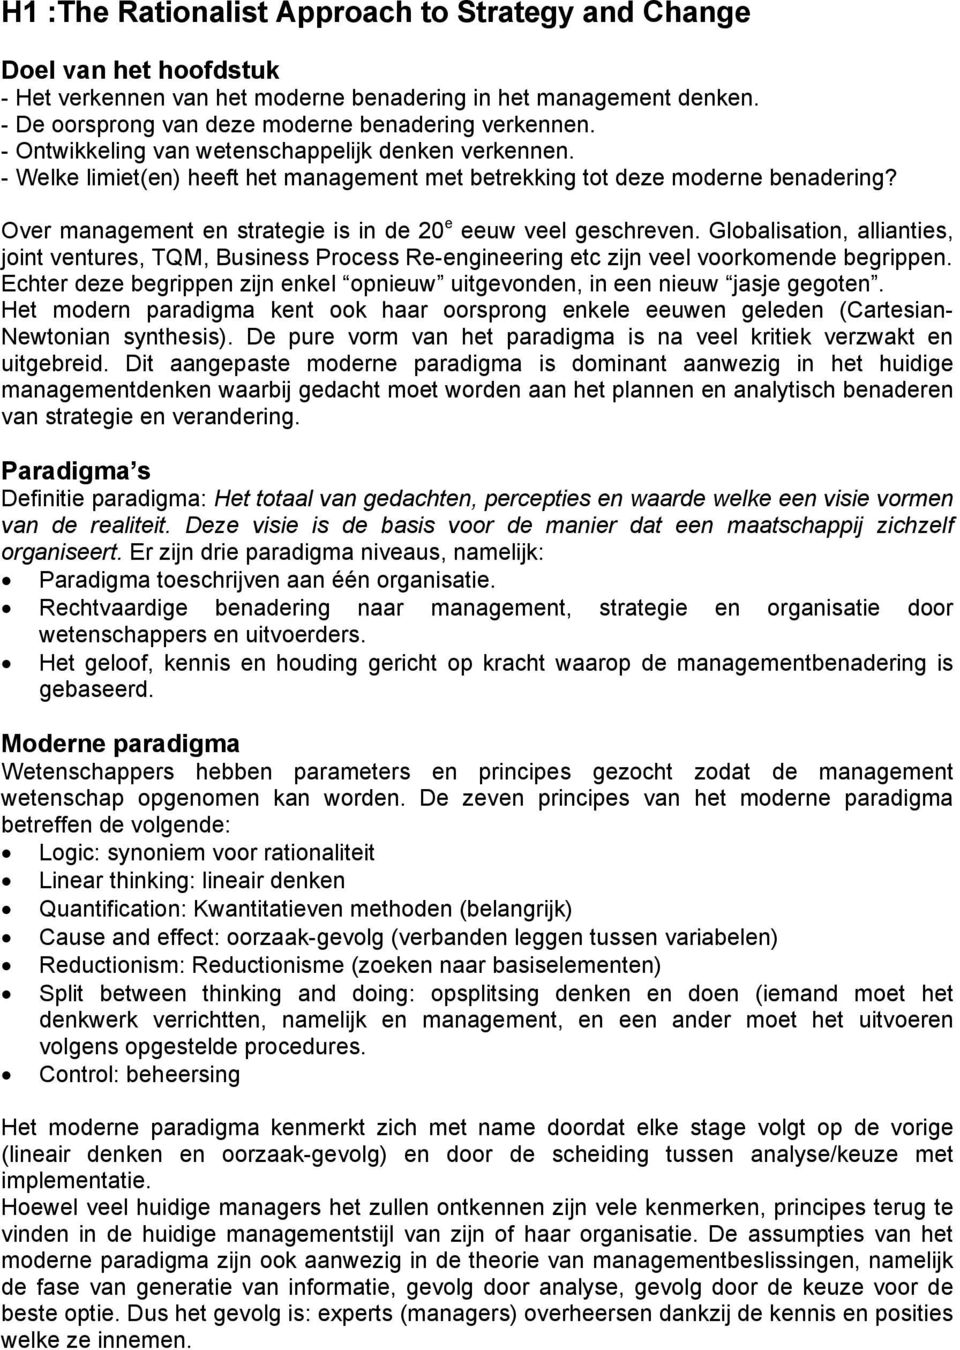 Over management en strategie is in de 20 e eeuw veel geschreven. Globalisation, allianties, joint ventures, TQM, Business Process Re-engineering etc zijn veel voorkomende begrippen.